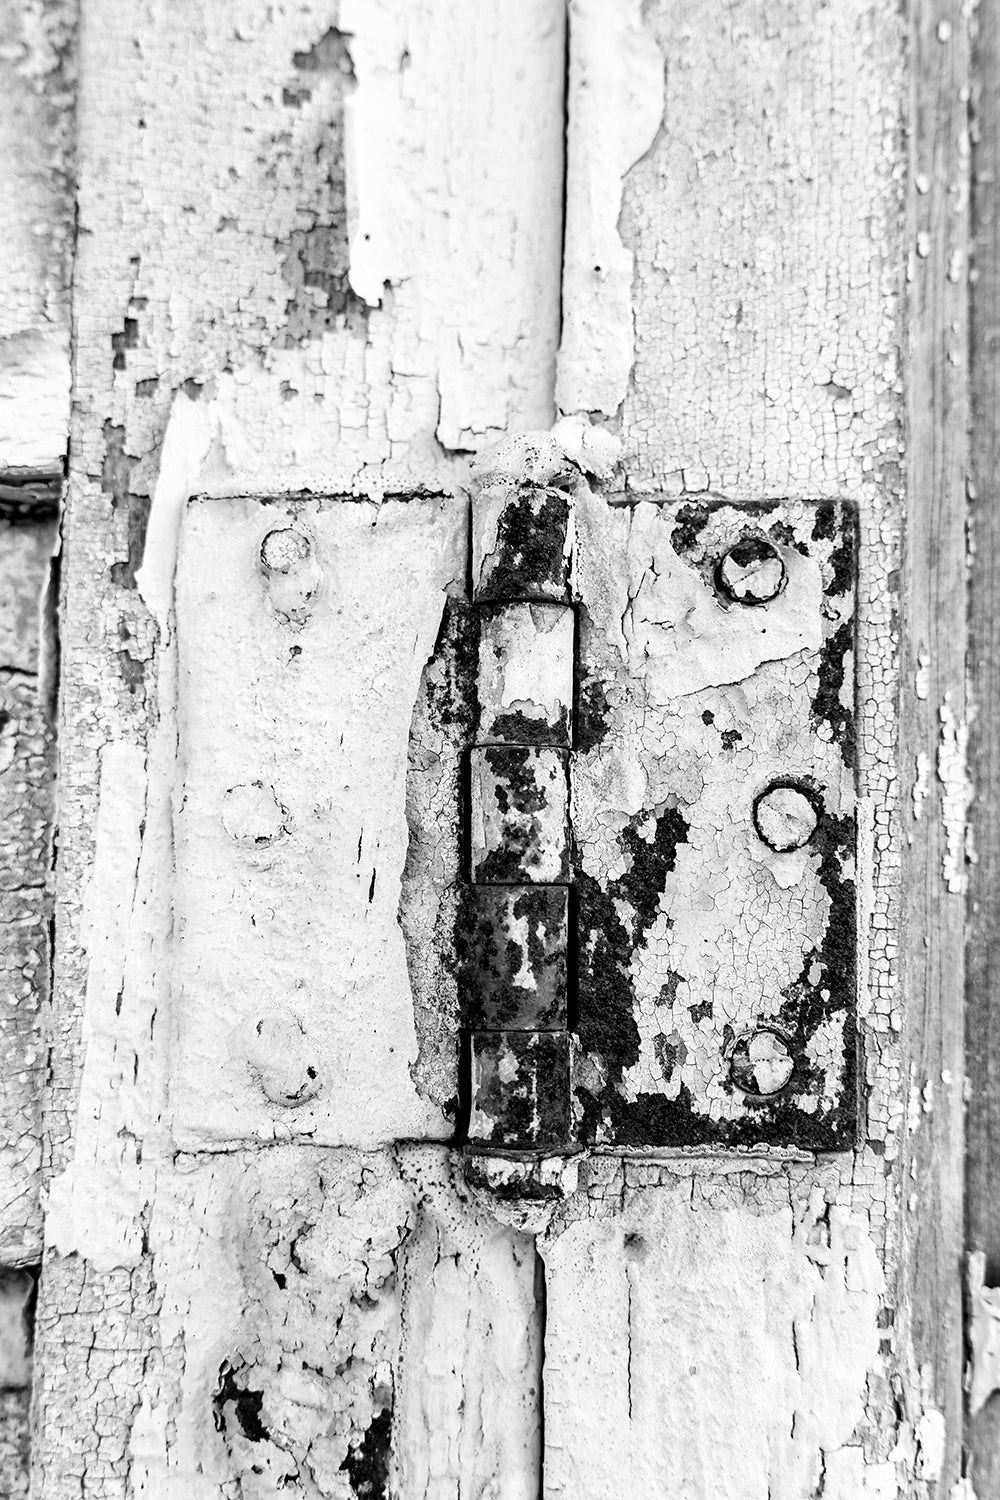 Rusty Door Hinge on an Abandoned Building: Black and White Photograph by Keith Dotson. Buy a fine art print here.